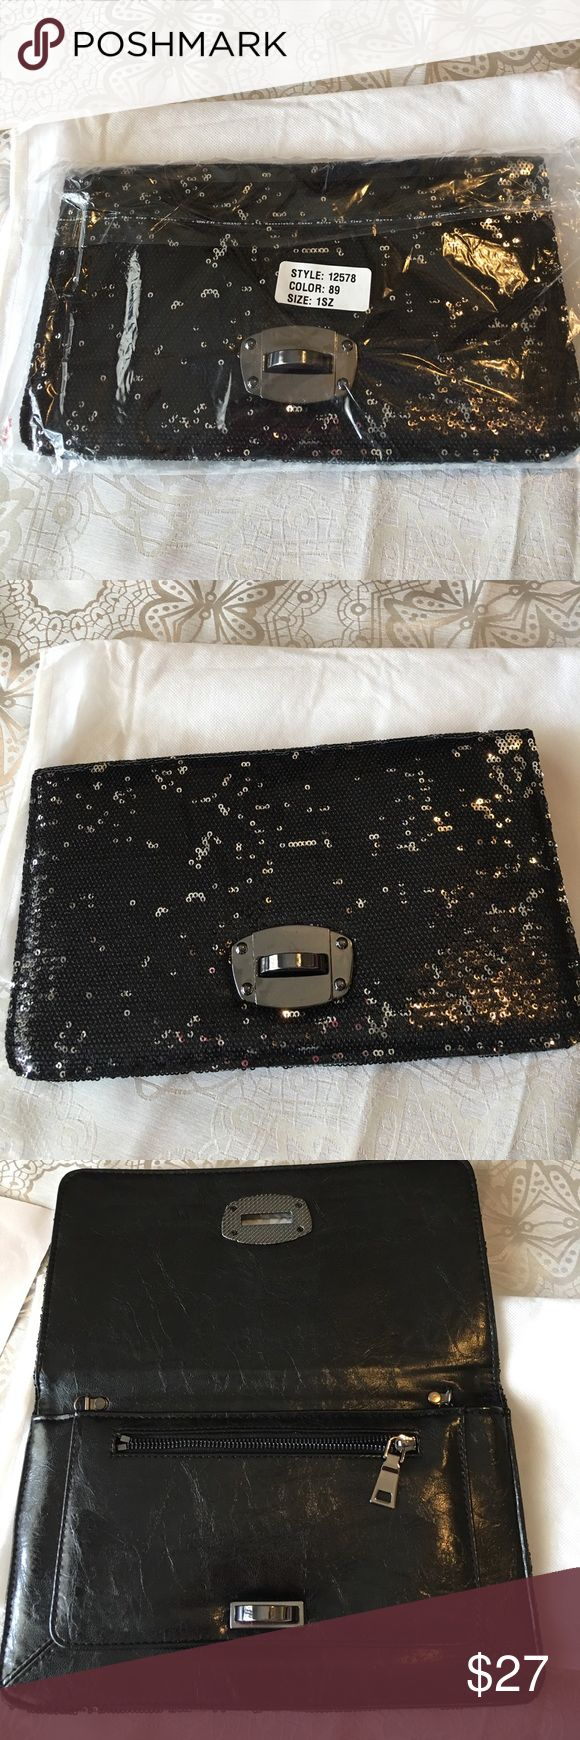 """Frederick's of Hollywood new black sequin clutch This is a brand new black sequined clutch from Frederick's of Hollywood measuring 11.5"""" in length by 7"""" in height.  Never used in original packaging. Frederick's of Hollywood Bags Clutches & Wristlets"""